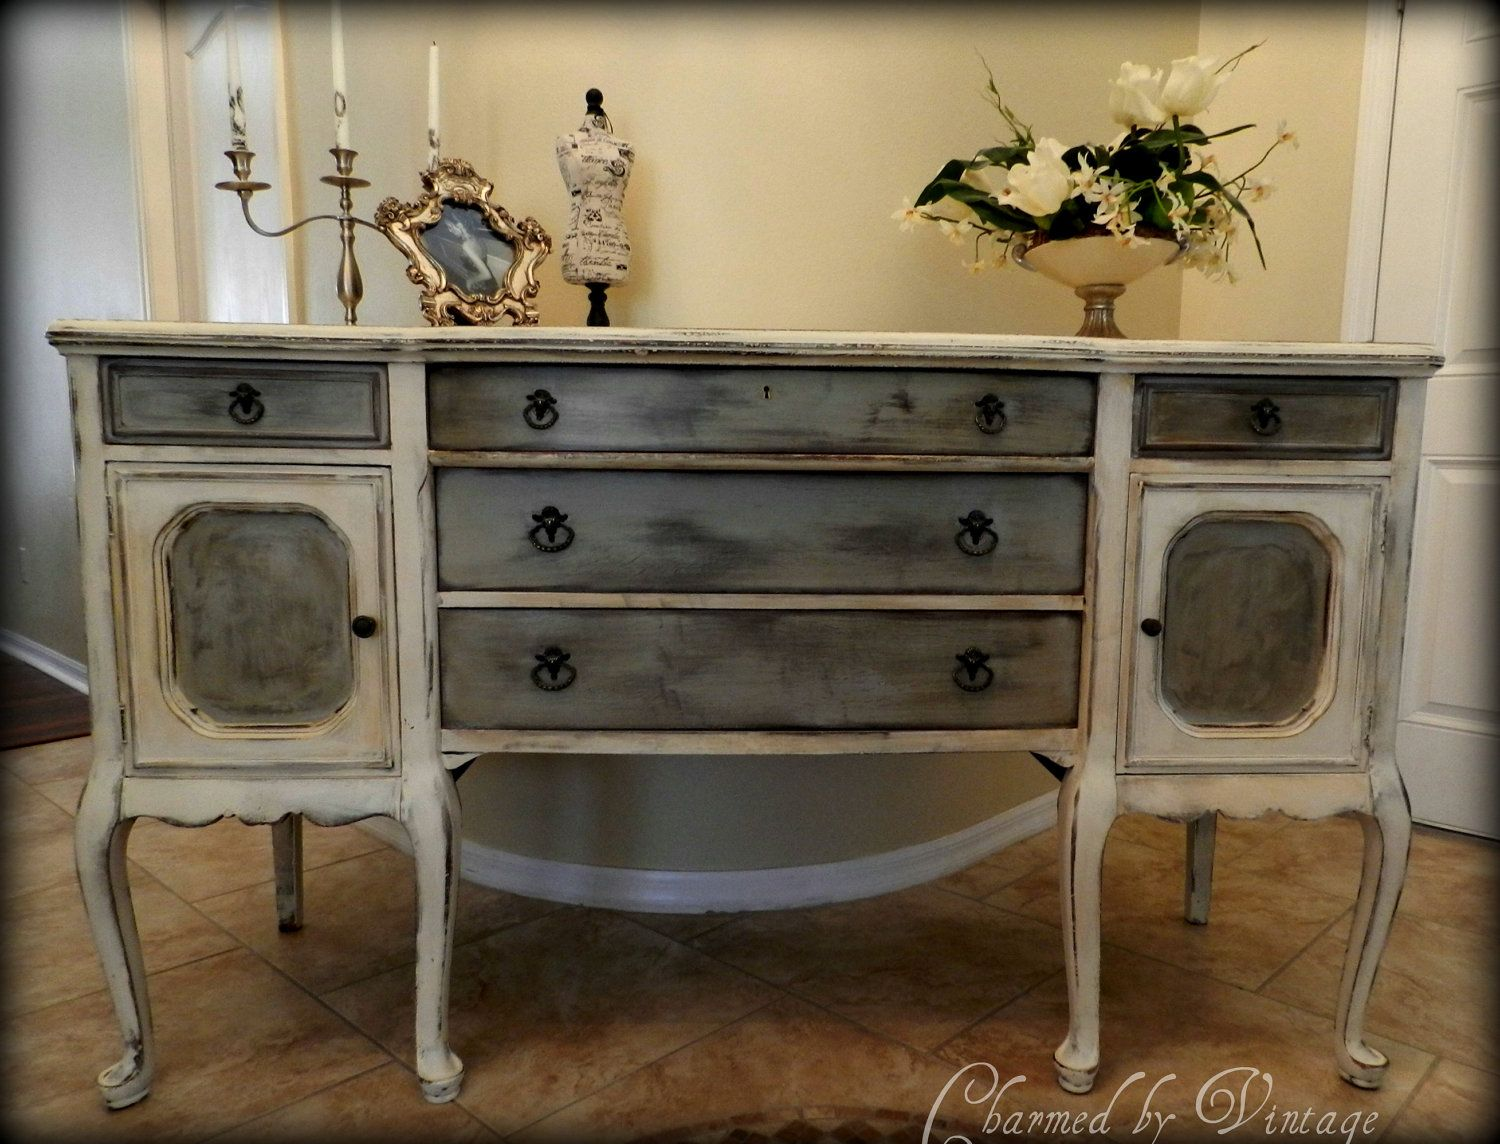 Antique buffet table furniture - Antique Hand Painted Buffet Sideboard